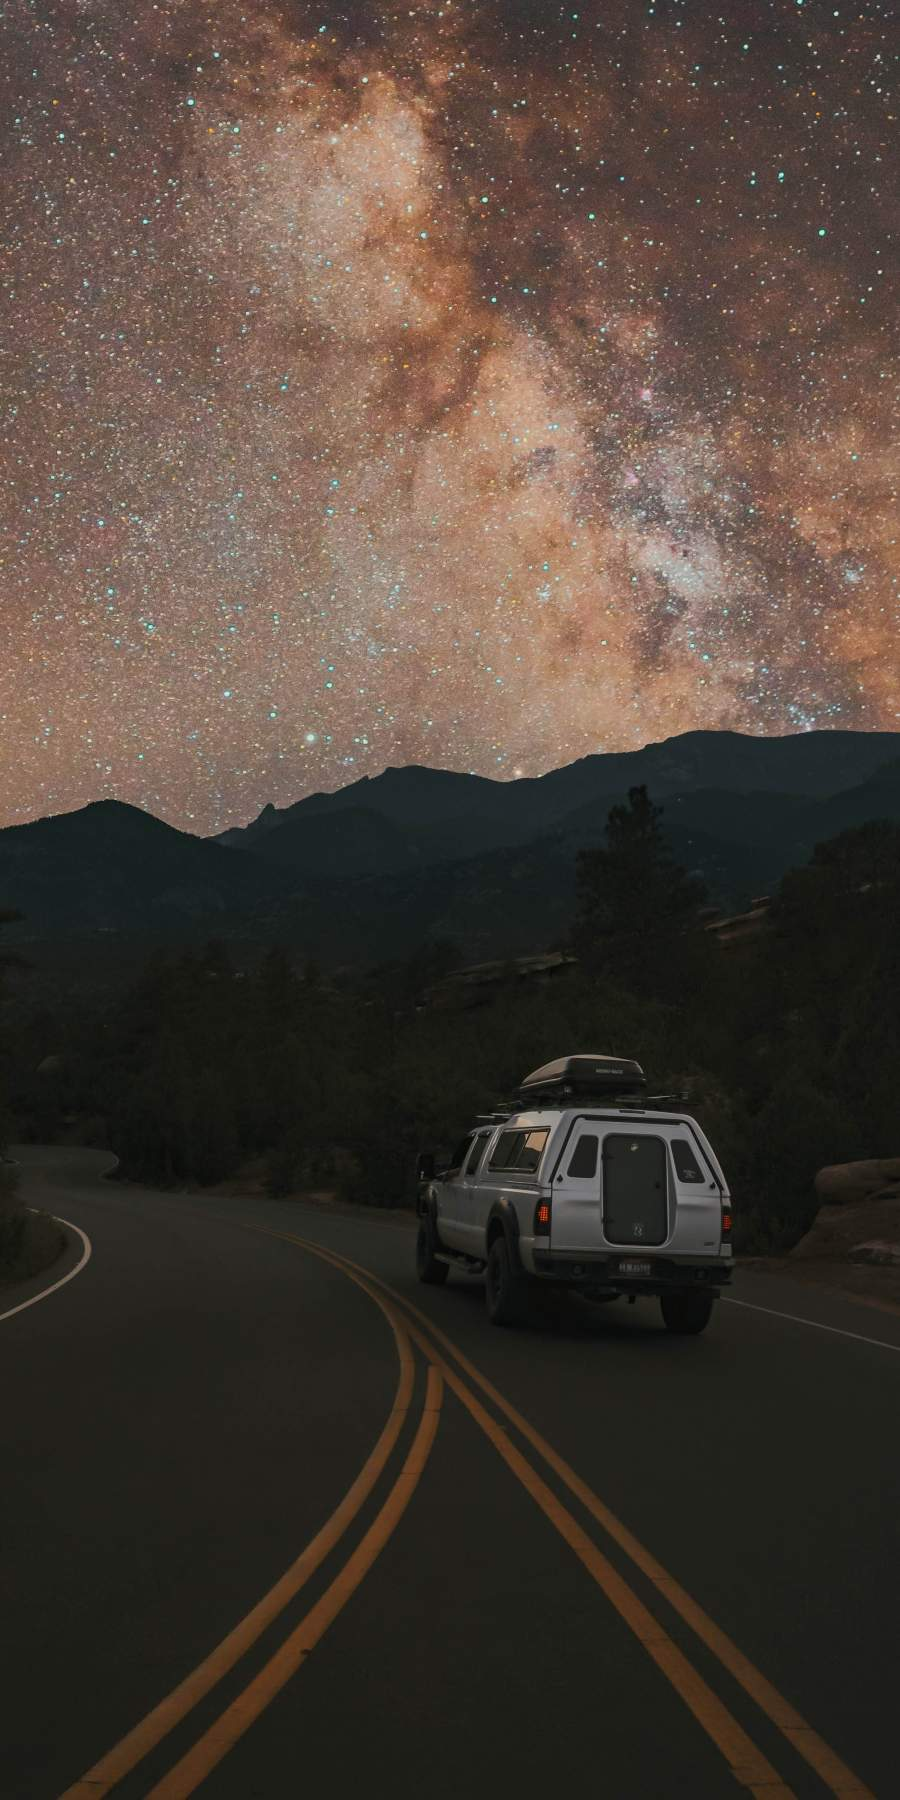 Starry Night Roads Camping Car iPhone Wallpaper